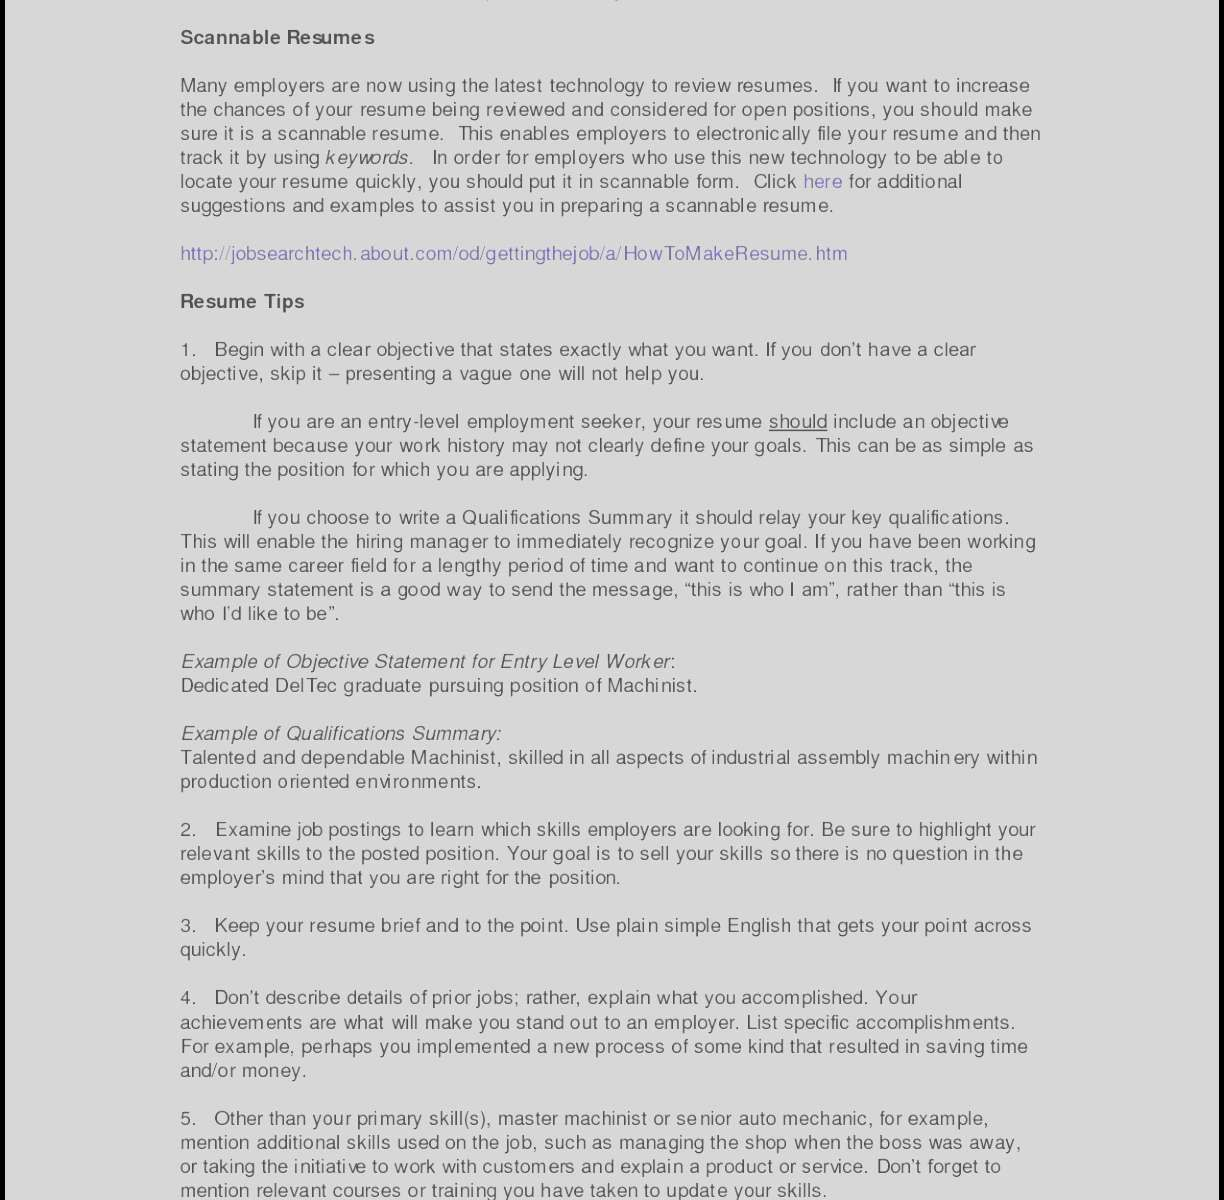 supervisor resume template example-76 Unique Automotive Supervisor Resume Examples 10-m